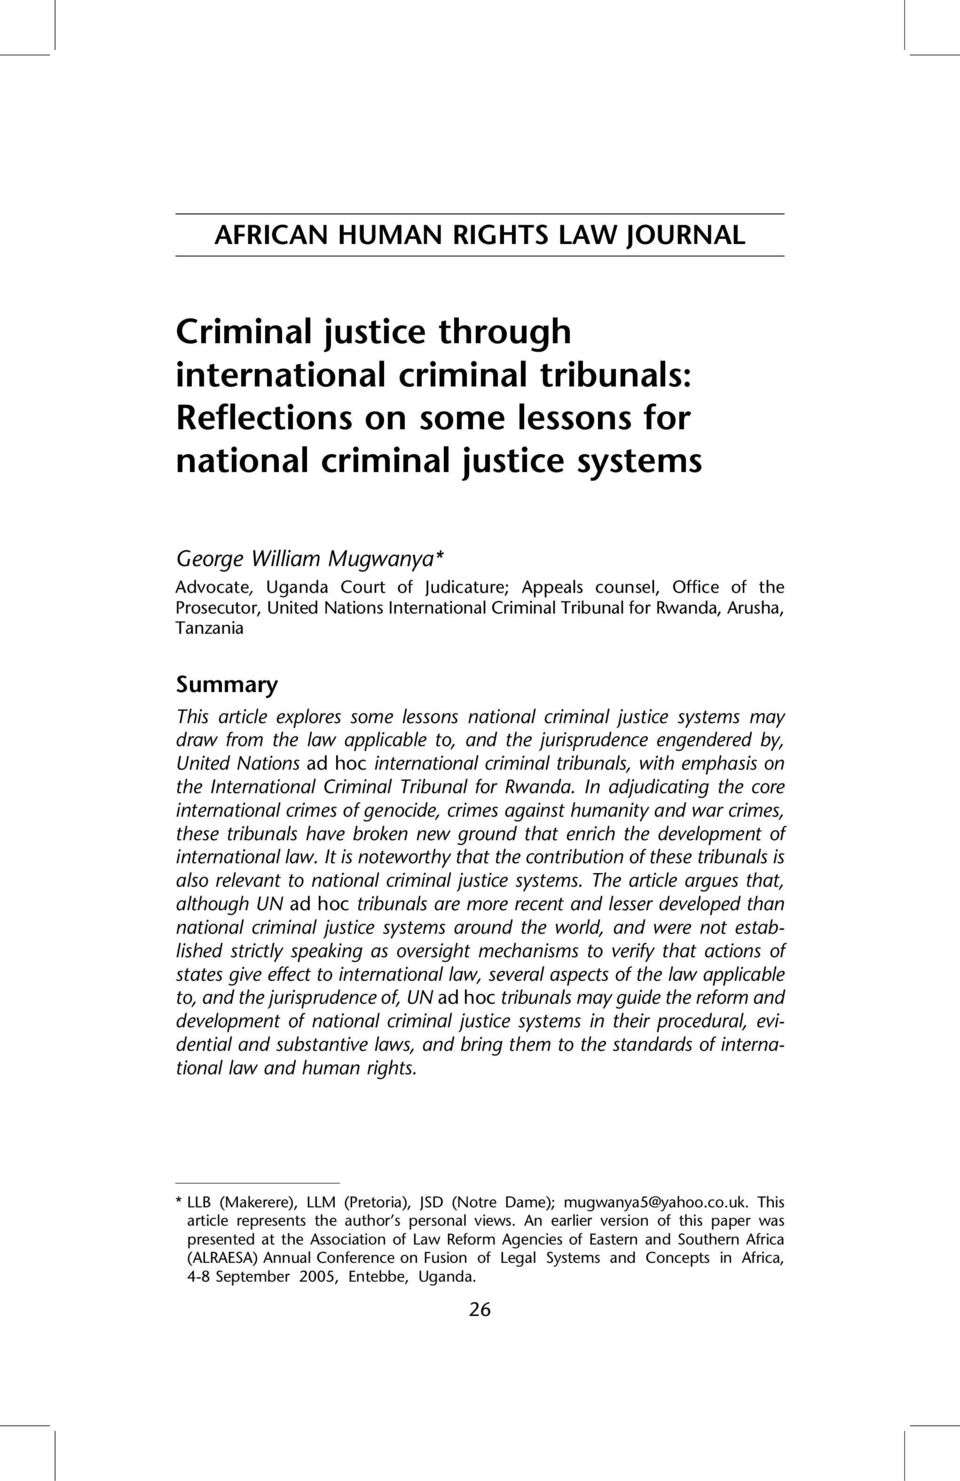 criminal justice systems may draw from the law applicable to, and the jurisprudence engendered by, United Nations ad hoc international criminal tribunals, with emphasis on the International Criminal